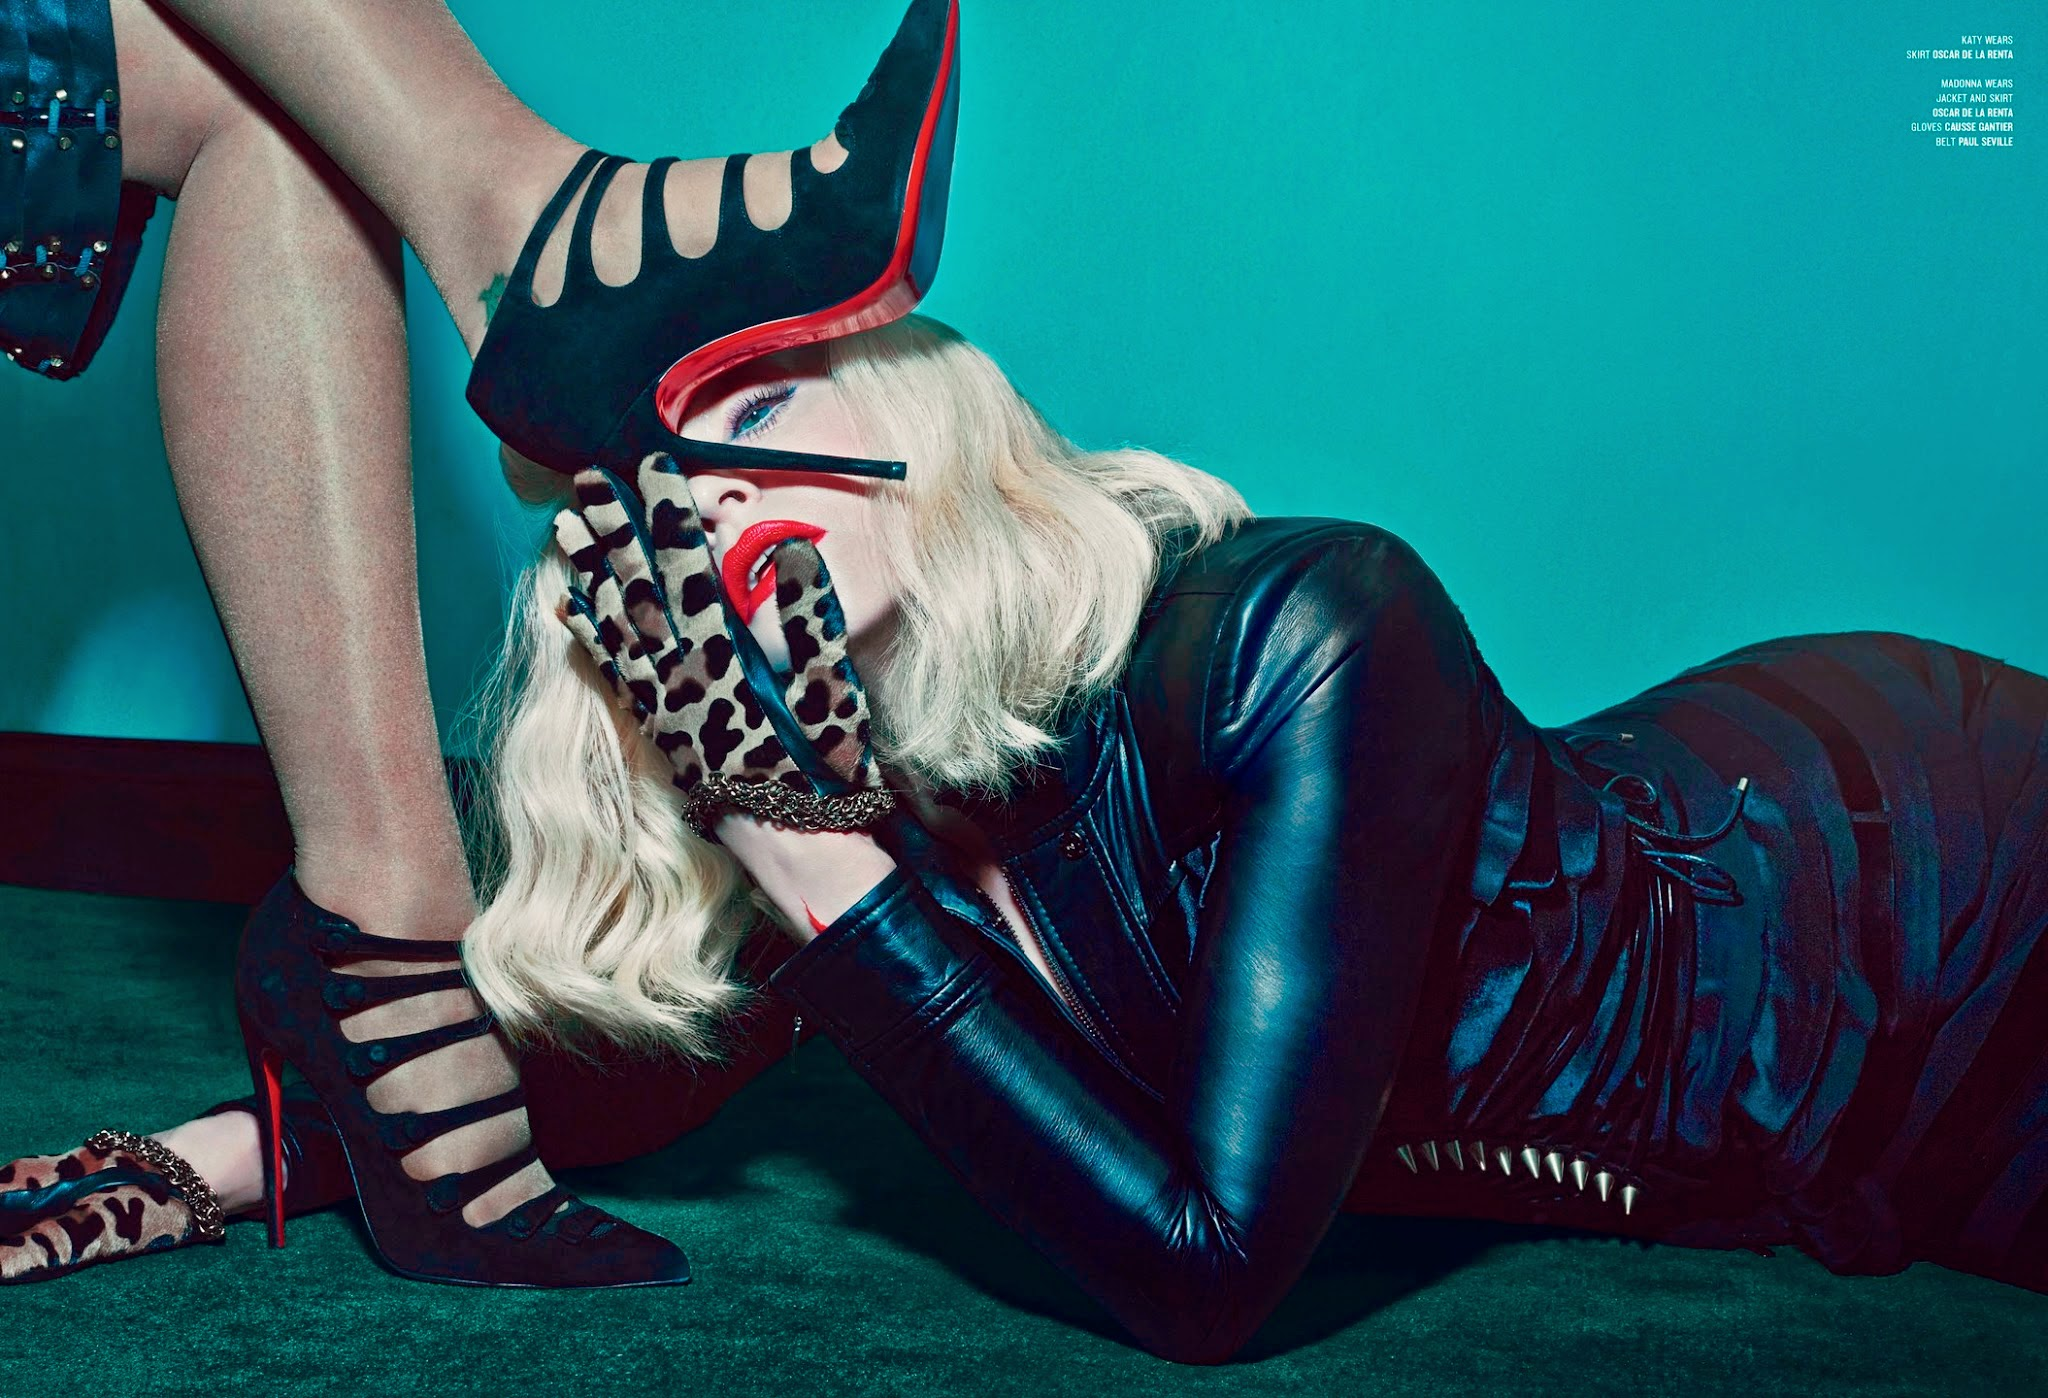 katy-perry-and-madonna-by-steven-klein-f